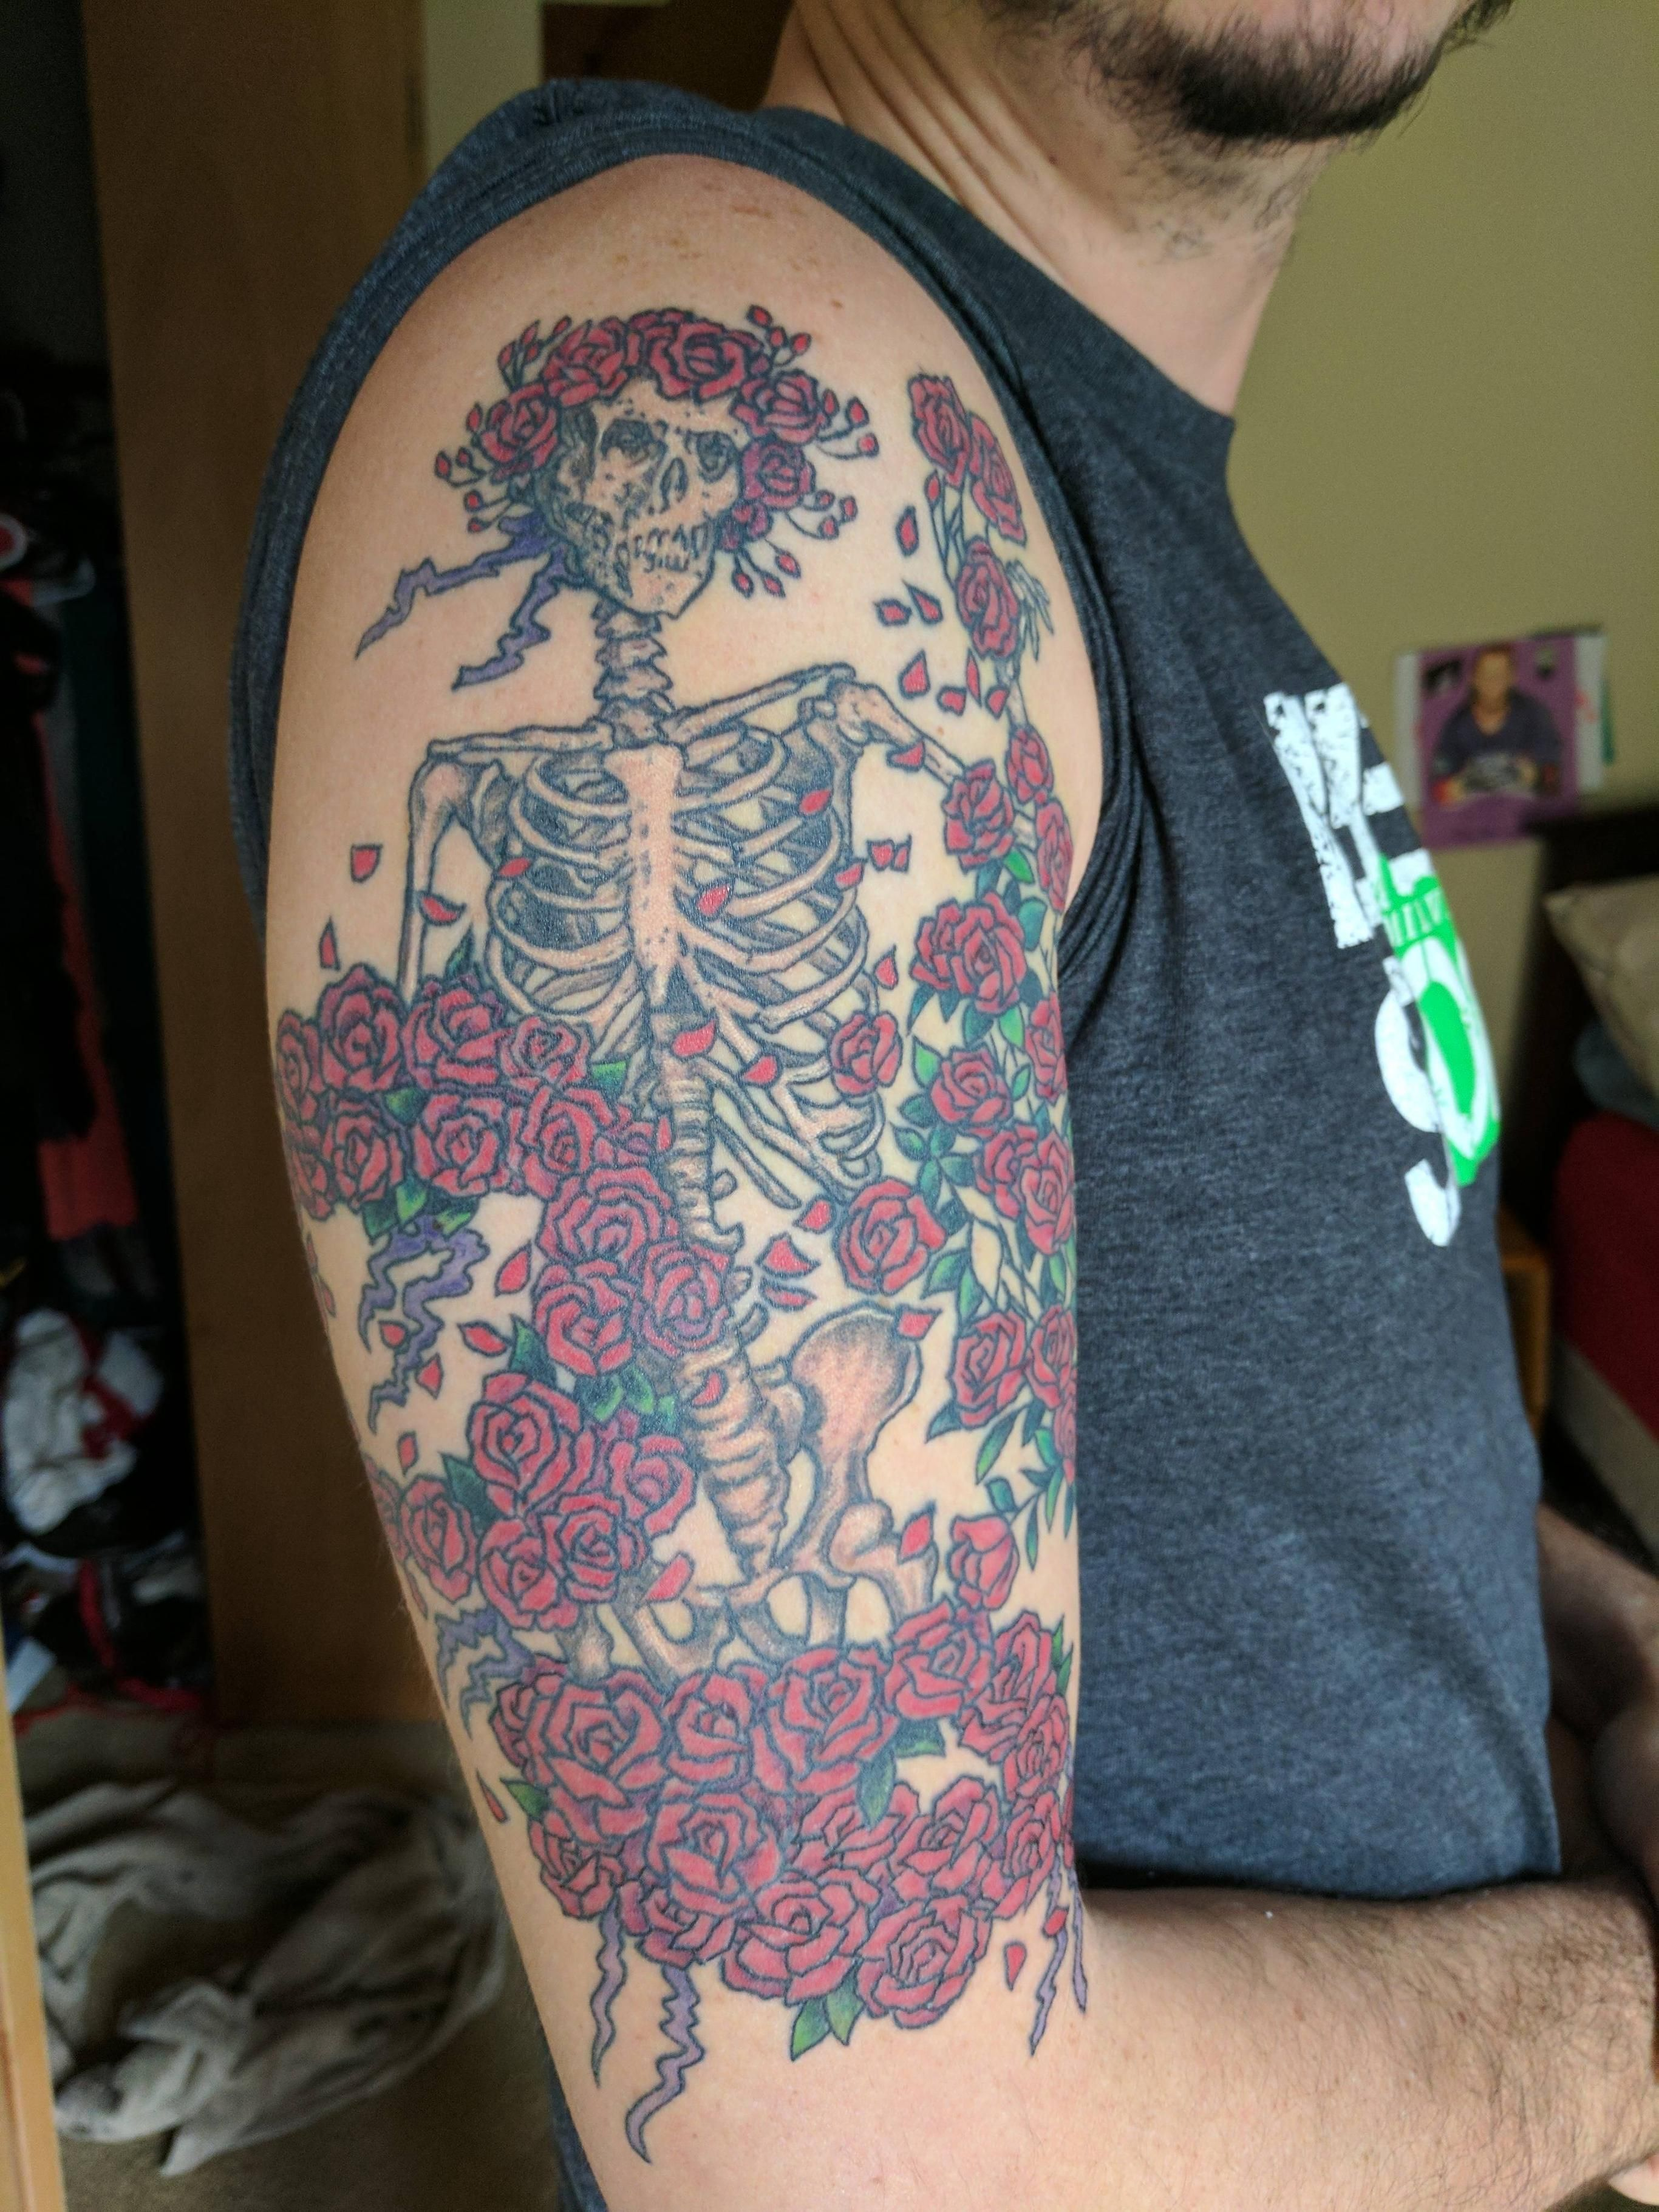 Forum on this topic: 50 Grateful Dead Tattoo Designs For Men , 50-grateful-dead-tattoo-designs-for-men/